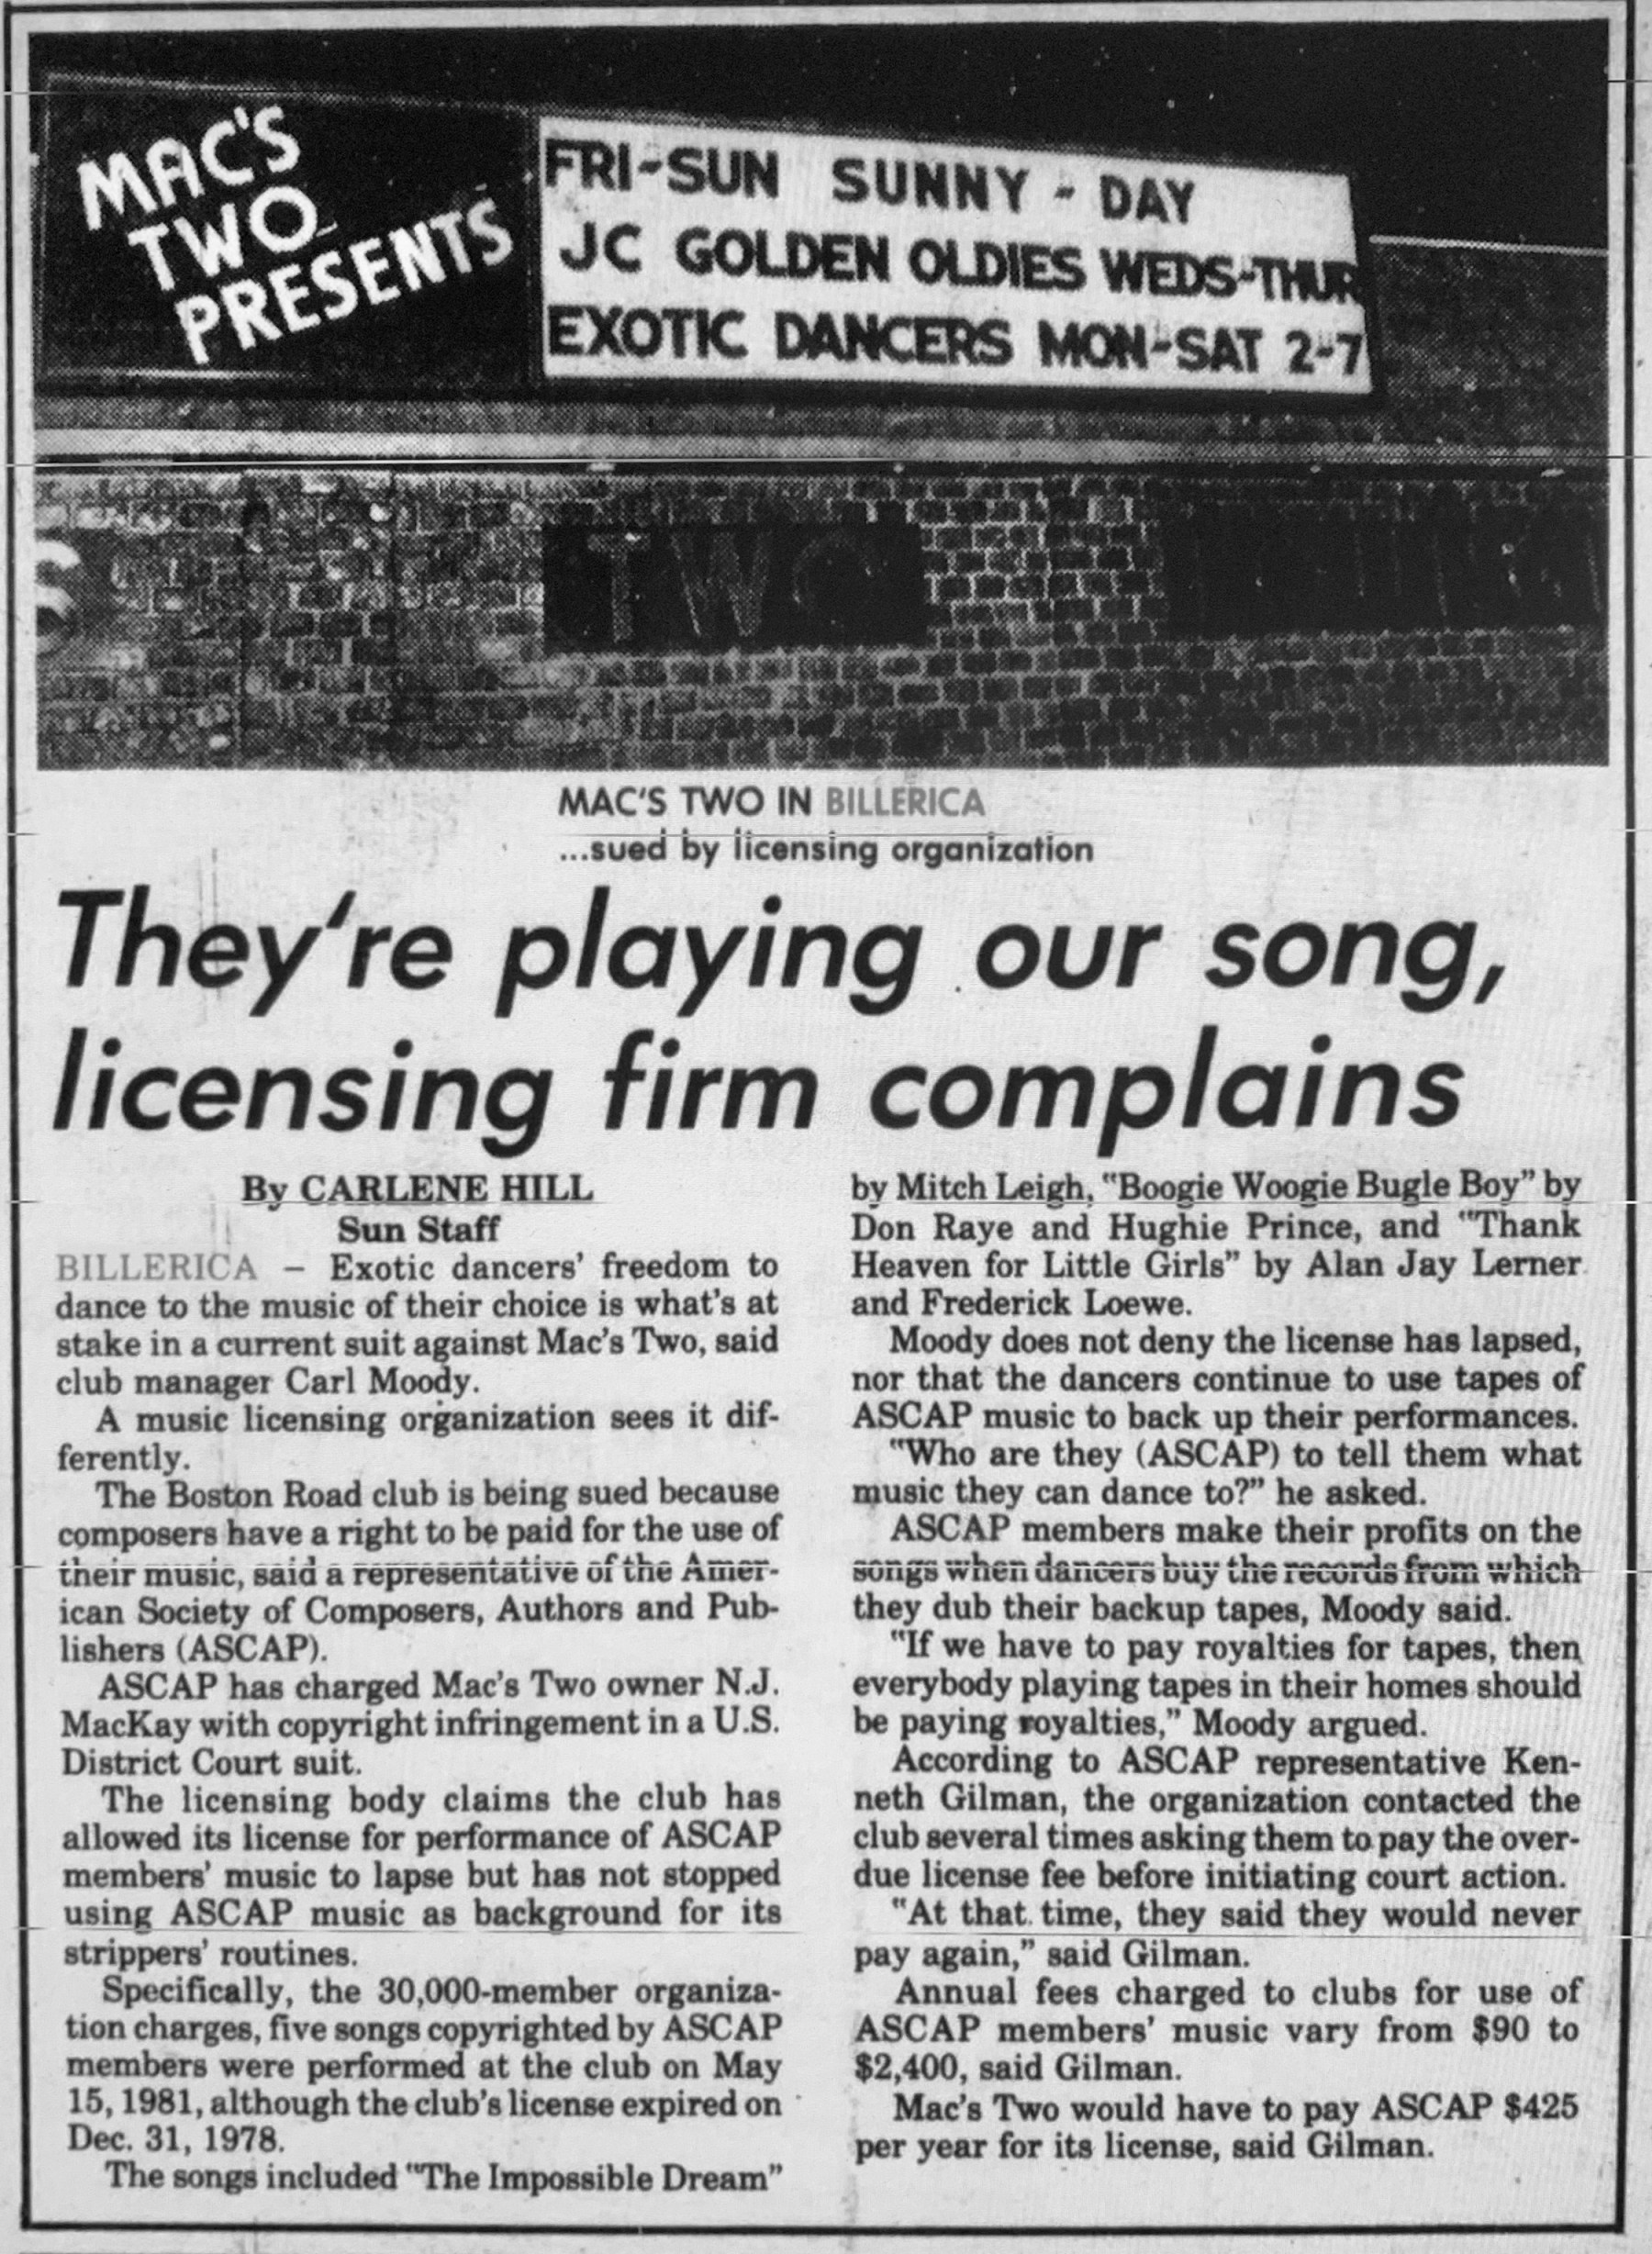 ASCAP vs Mac's Two 1981